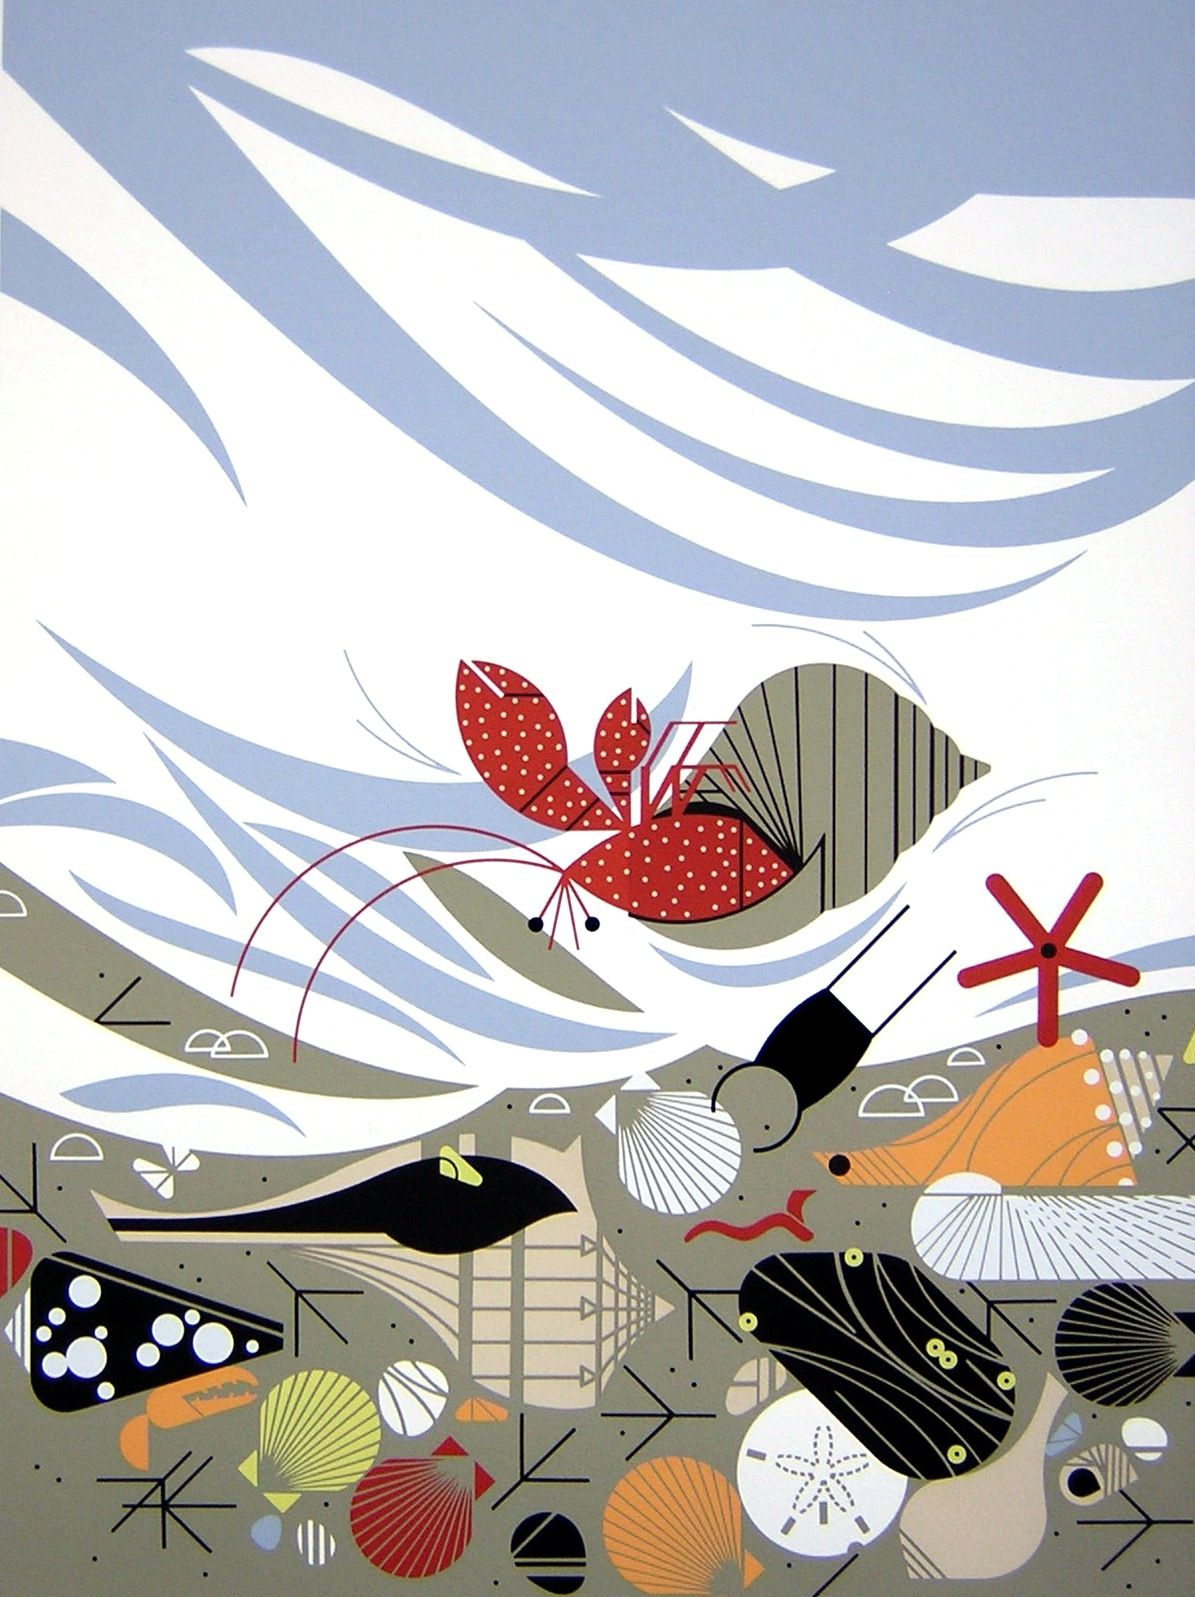 The Paper Coyote: Charley Harper   Lili   Pinterest   Inspiración ...